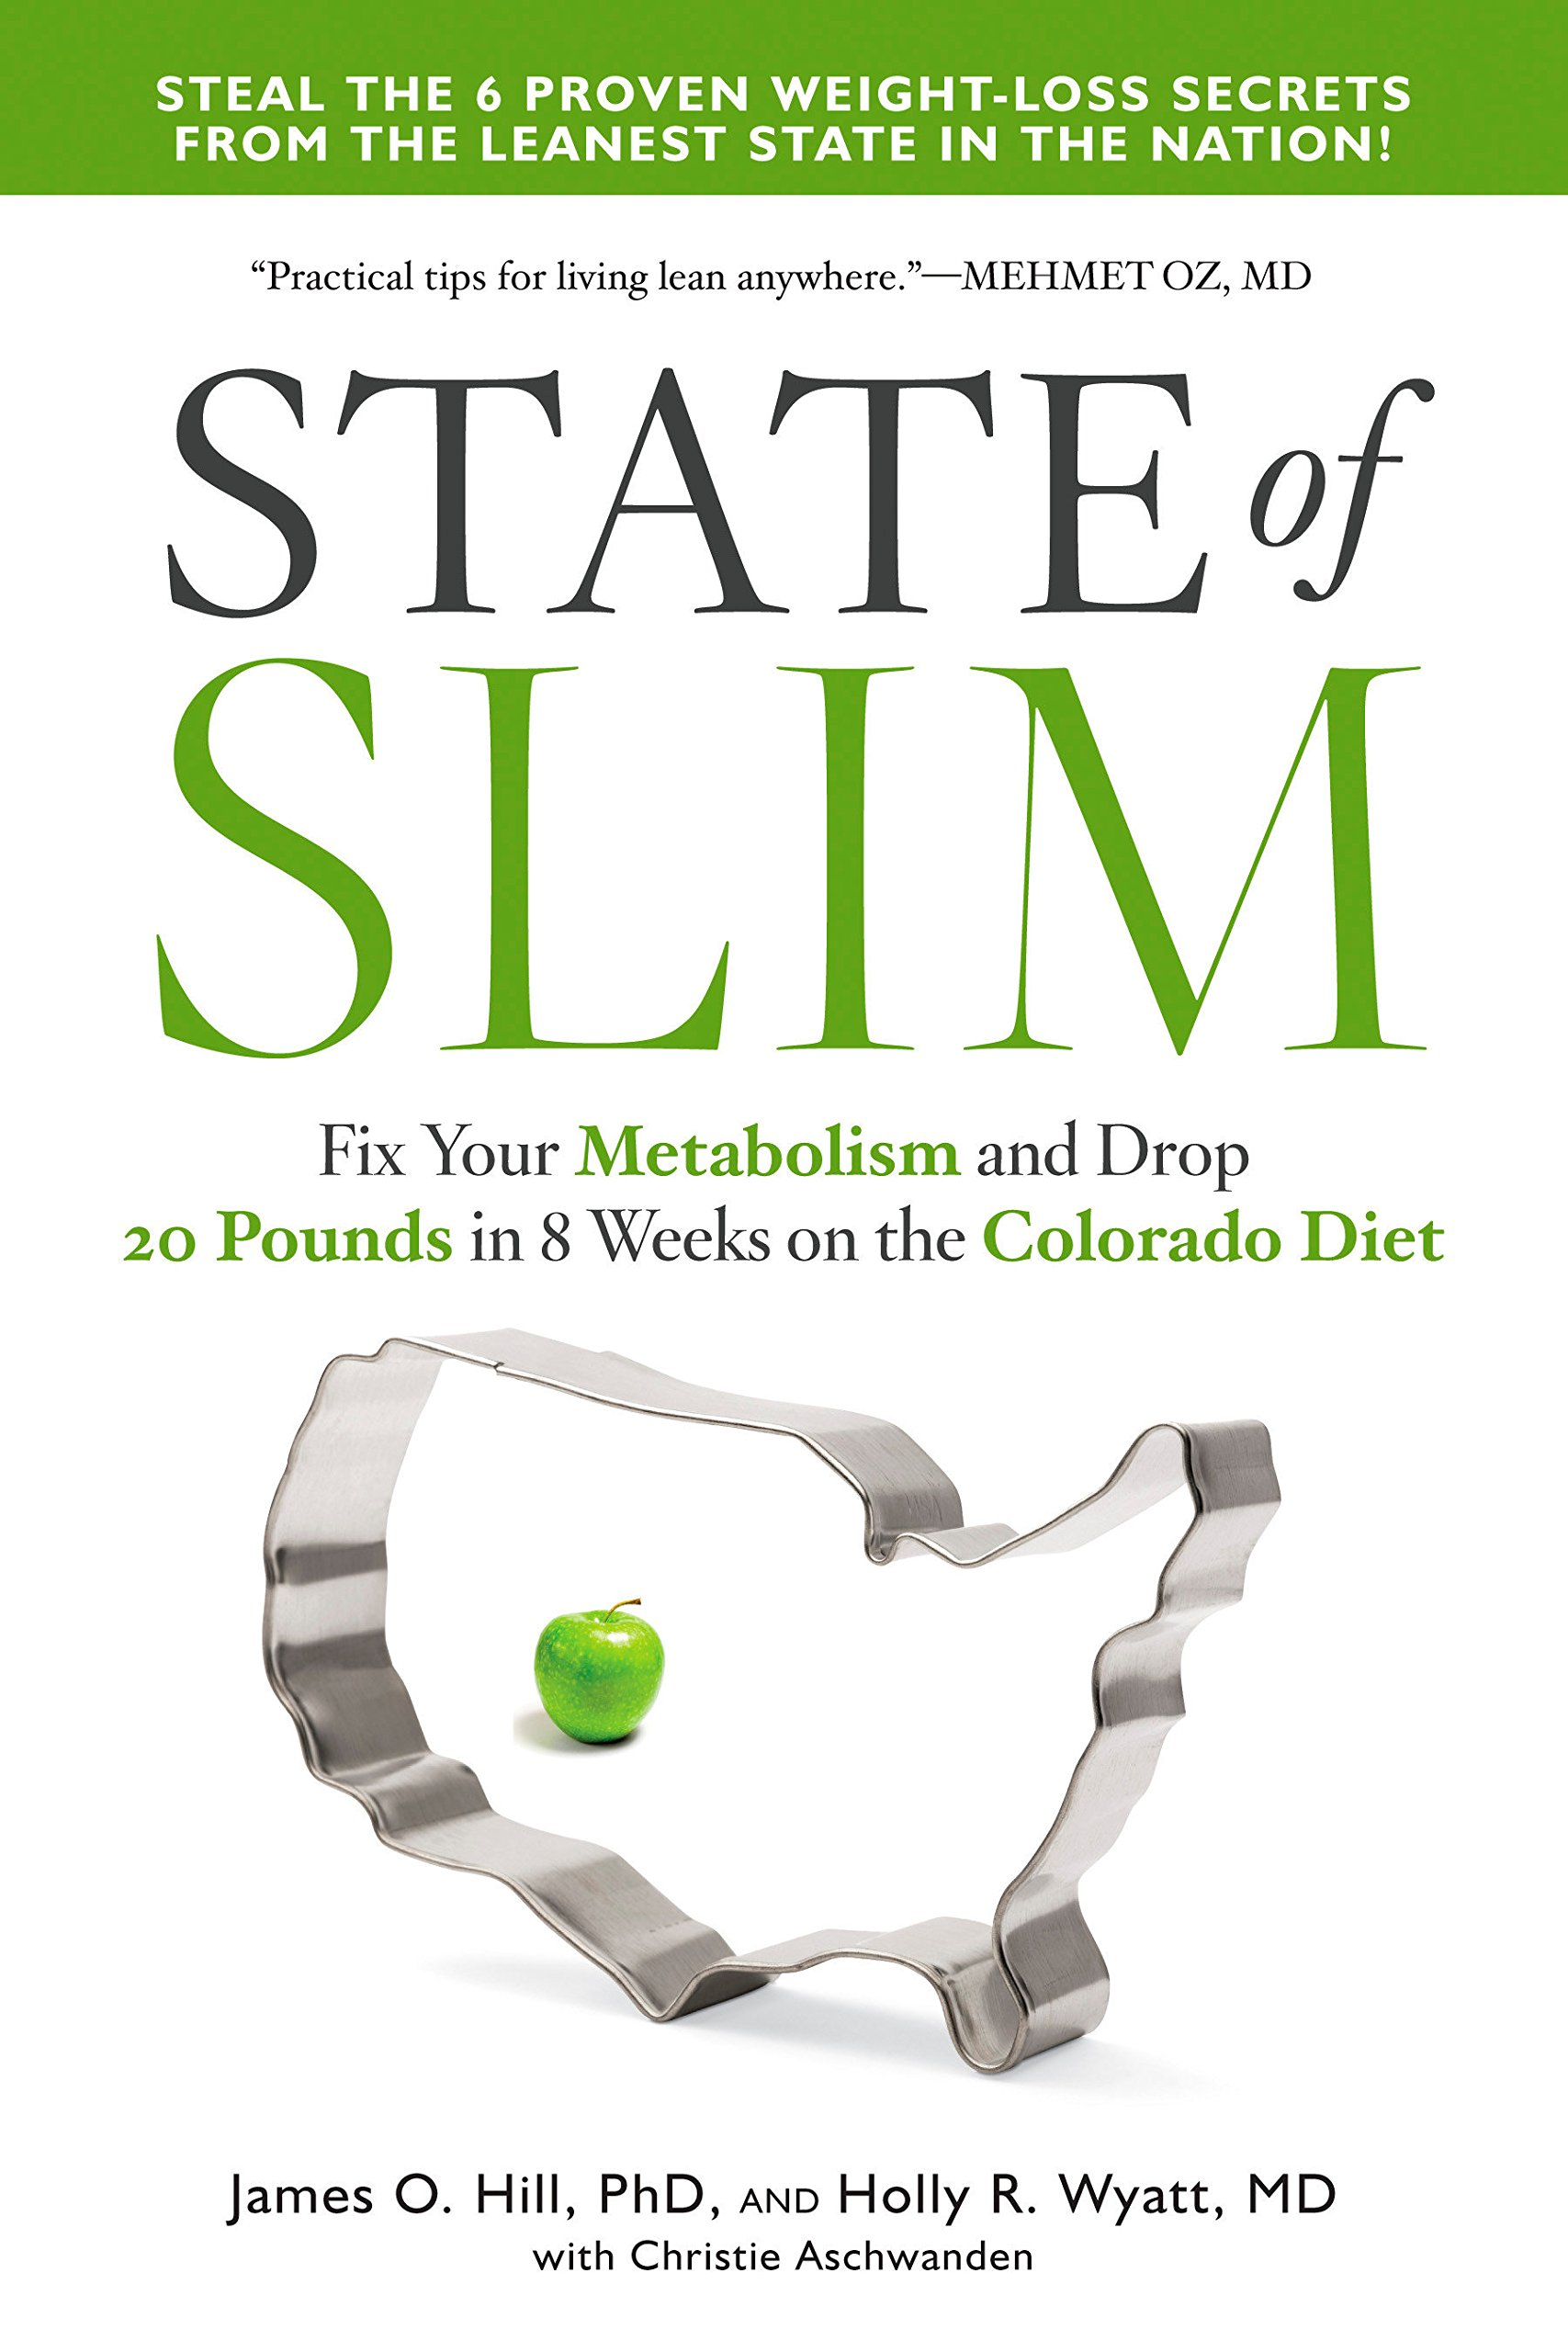 State of Slim: Fix Your Metabolism and Drop 20 Pounds in 8 Weeks on the Colorado Diet Paperback – June 7, 2016 James O. Hill Holly R. Wyatt M.D. Christie Aschwanden Rodale Books